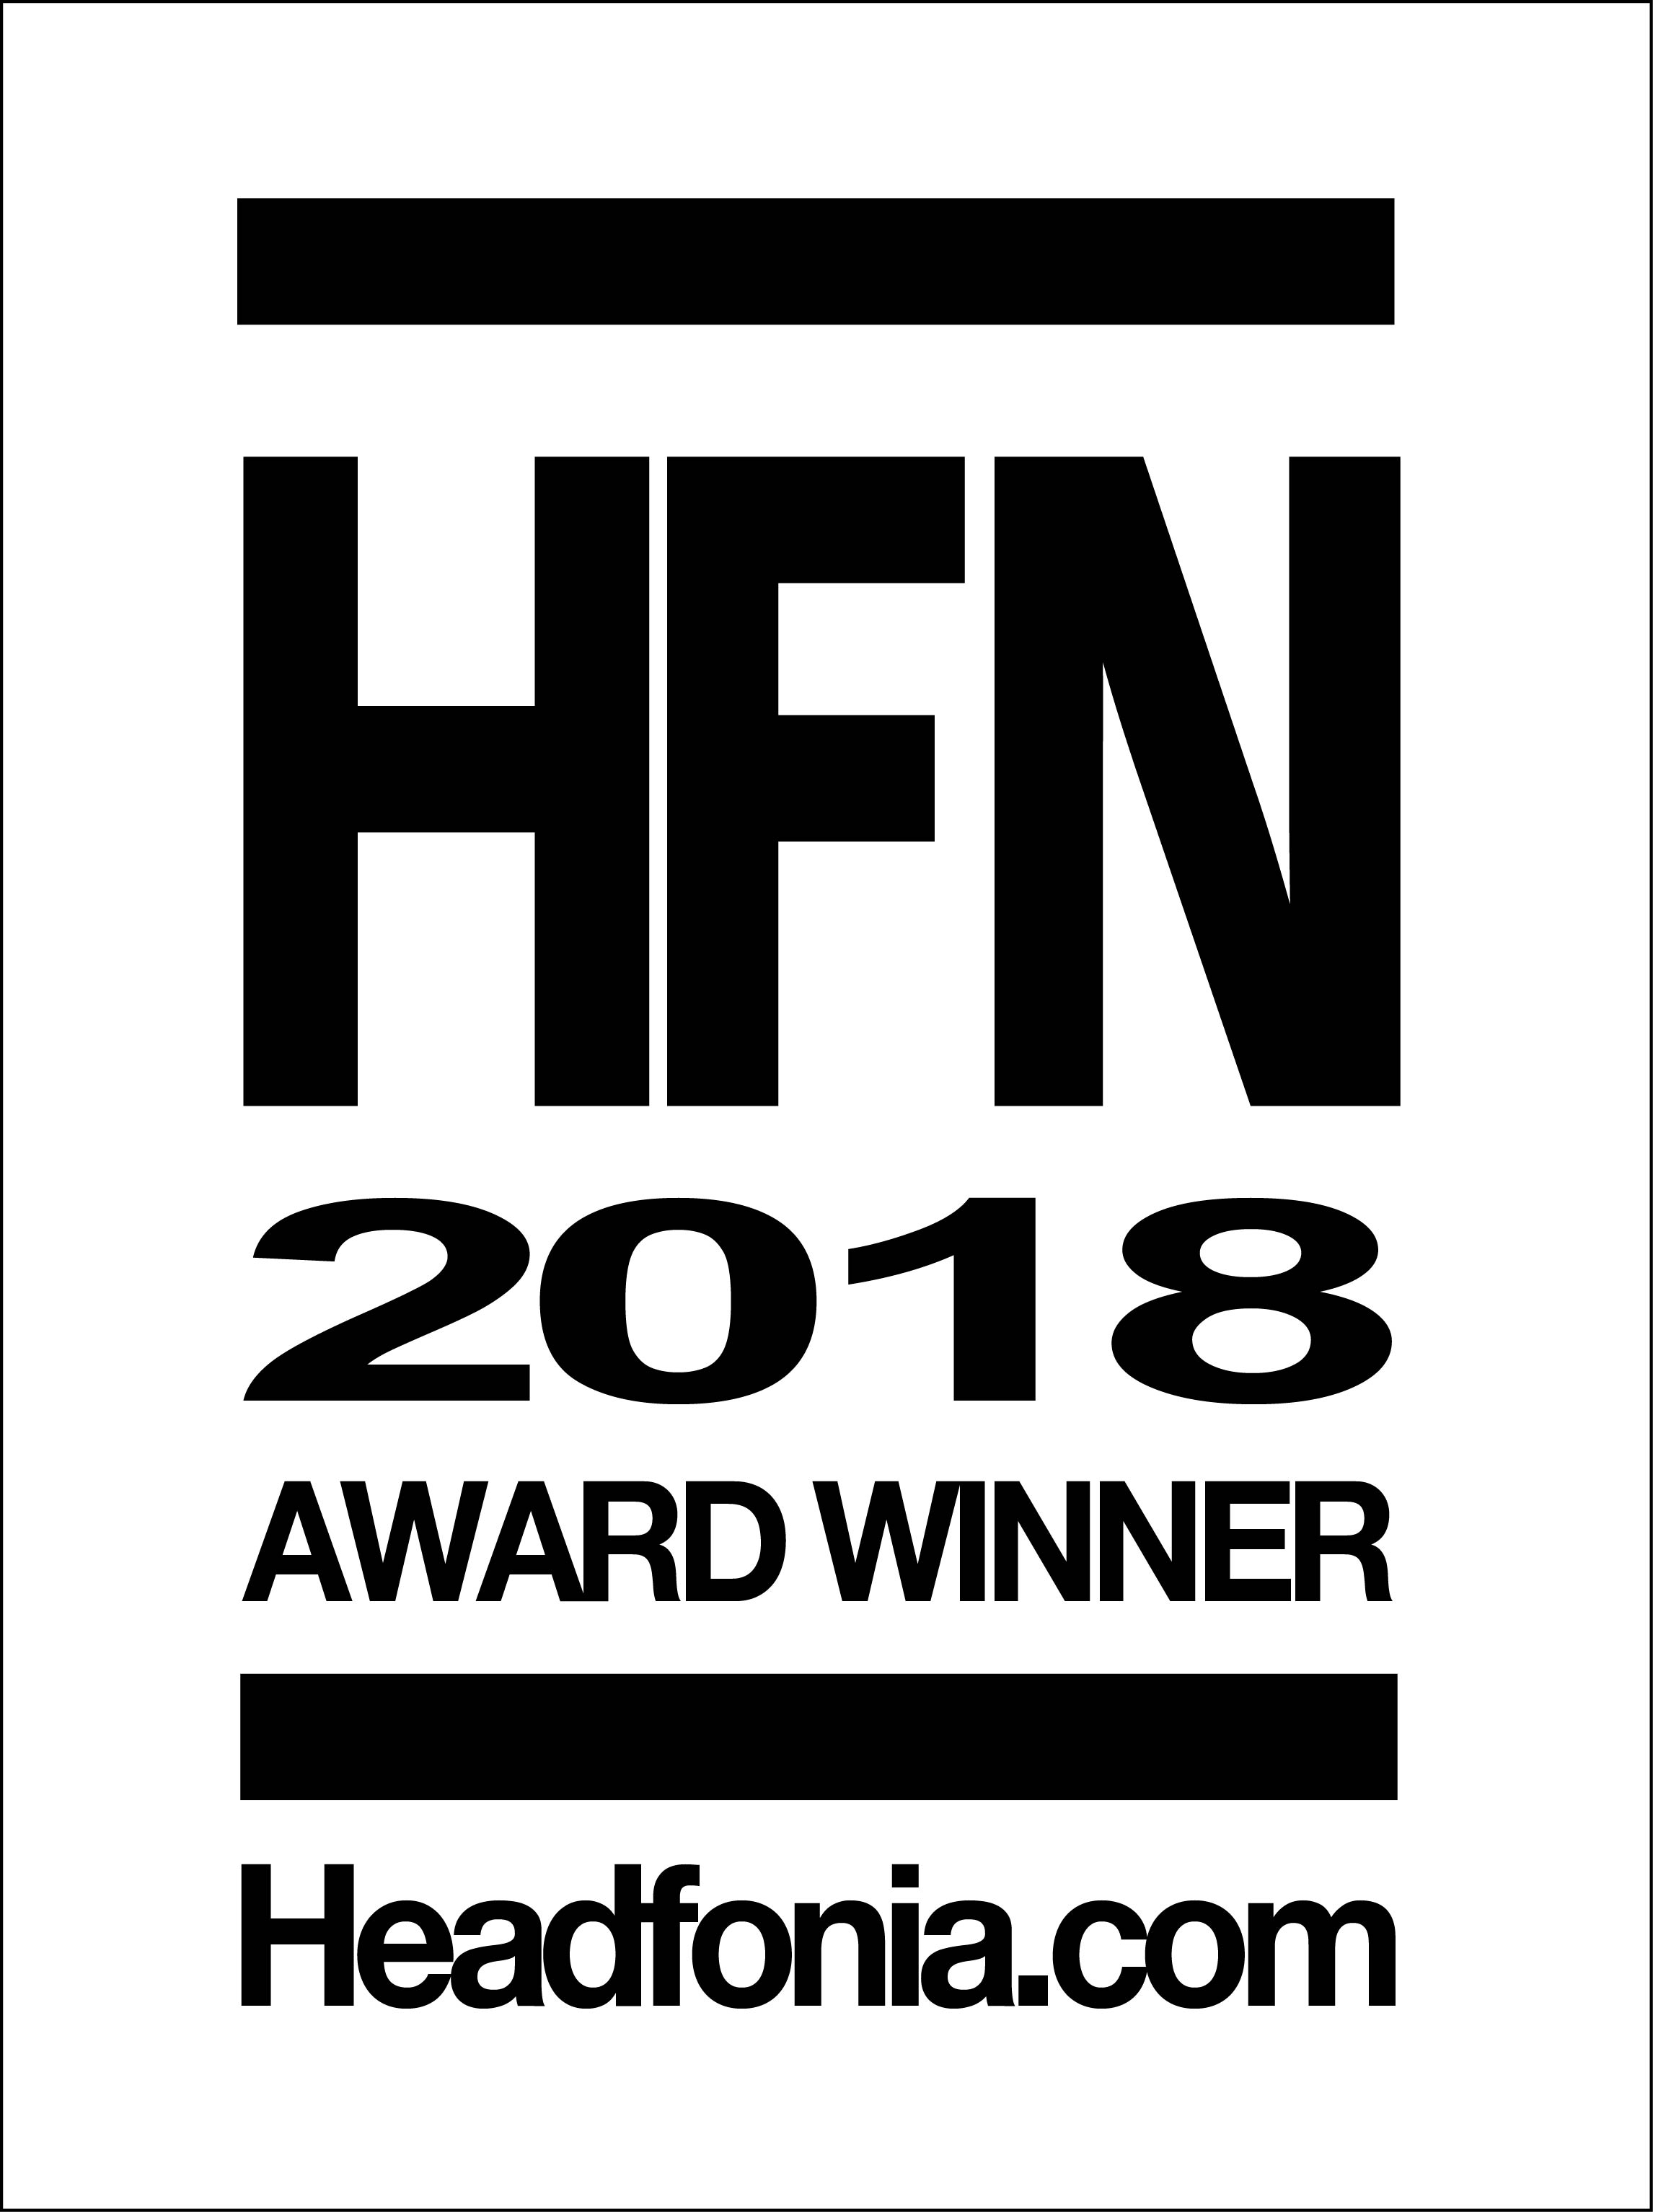 headfonia_award_2018_blacktext_withBackground